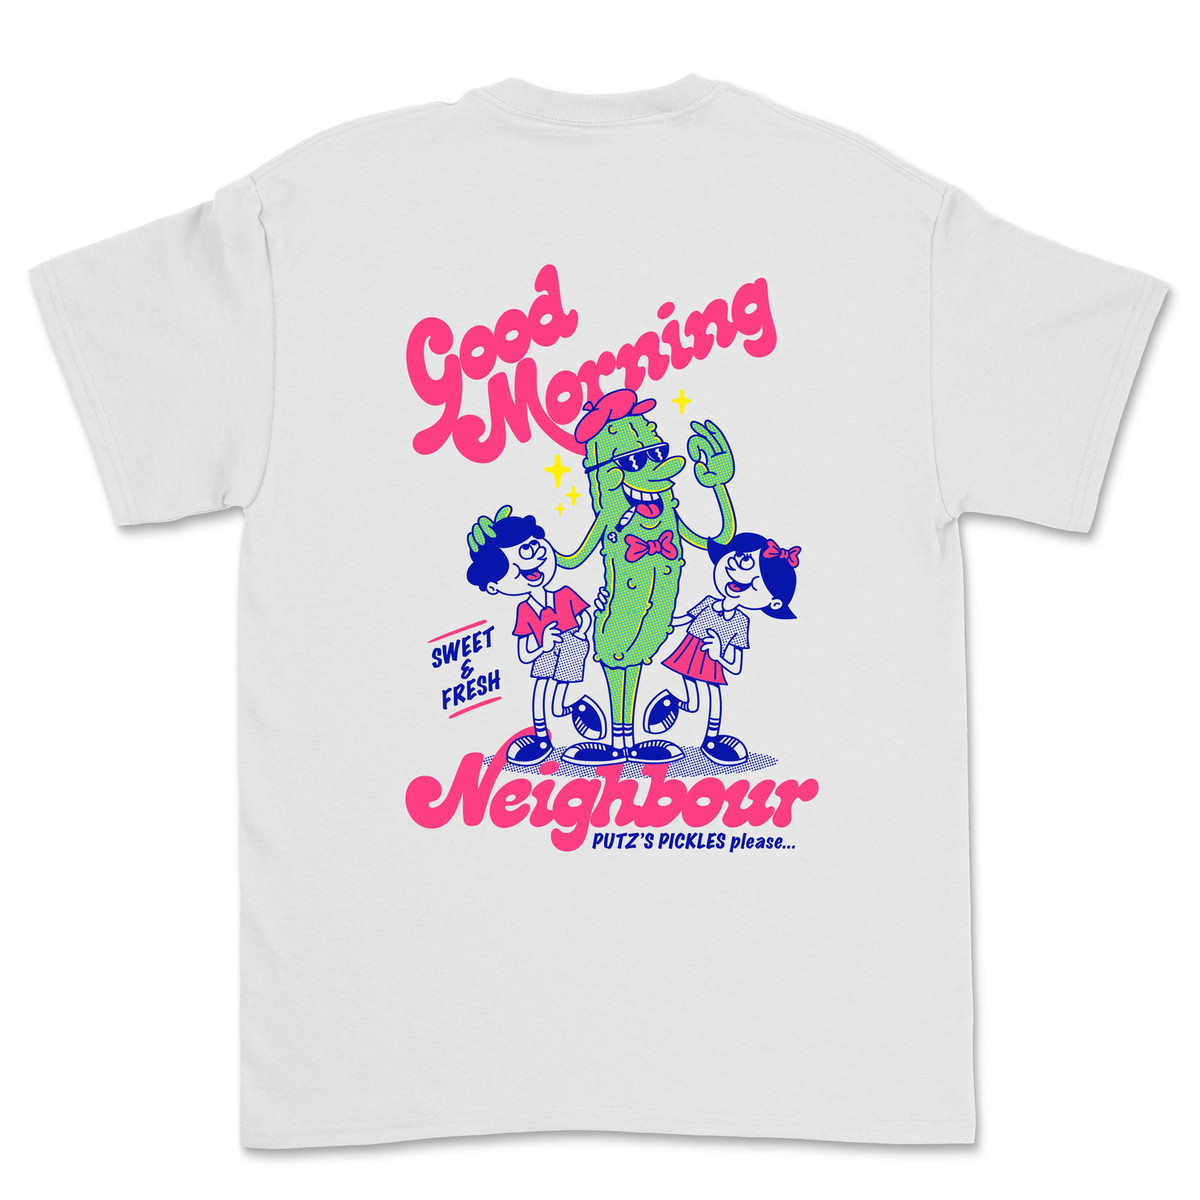 London's best restaurant merch includes this Good Morning Neighbour t-shirt illustrated with an animated pickle